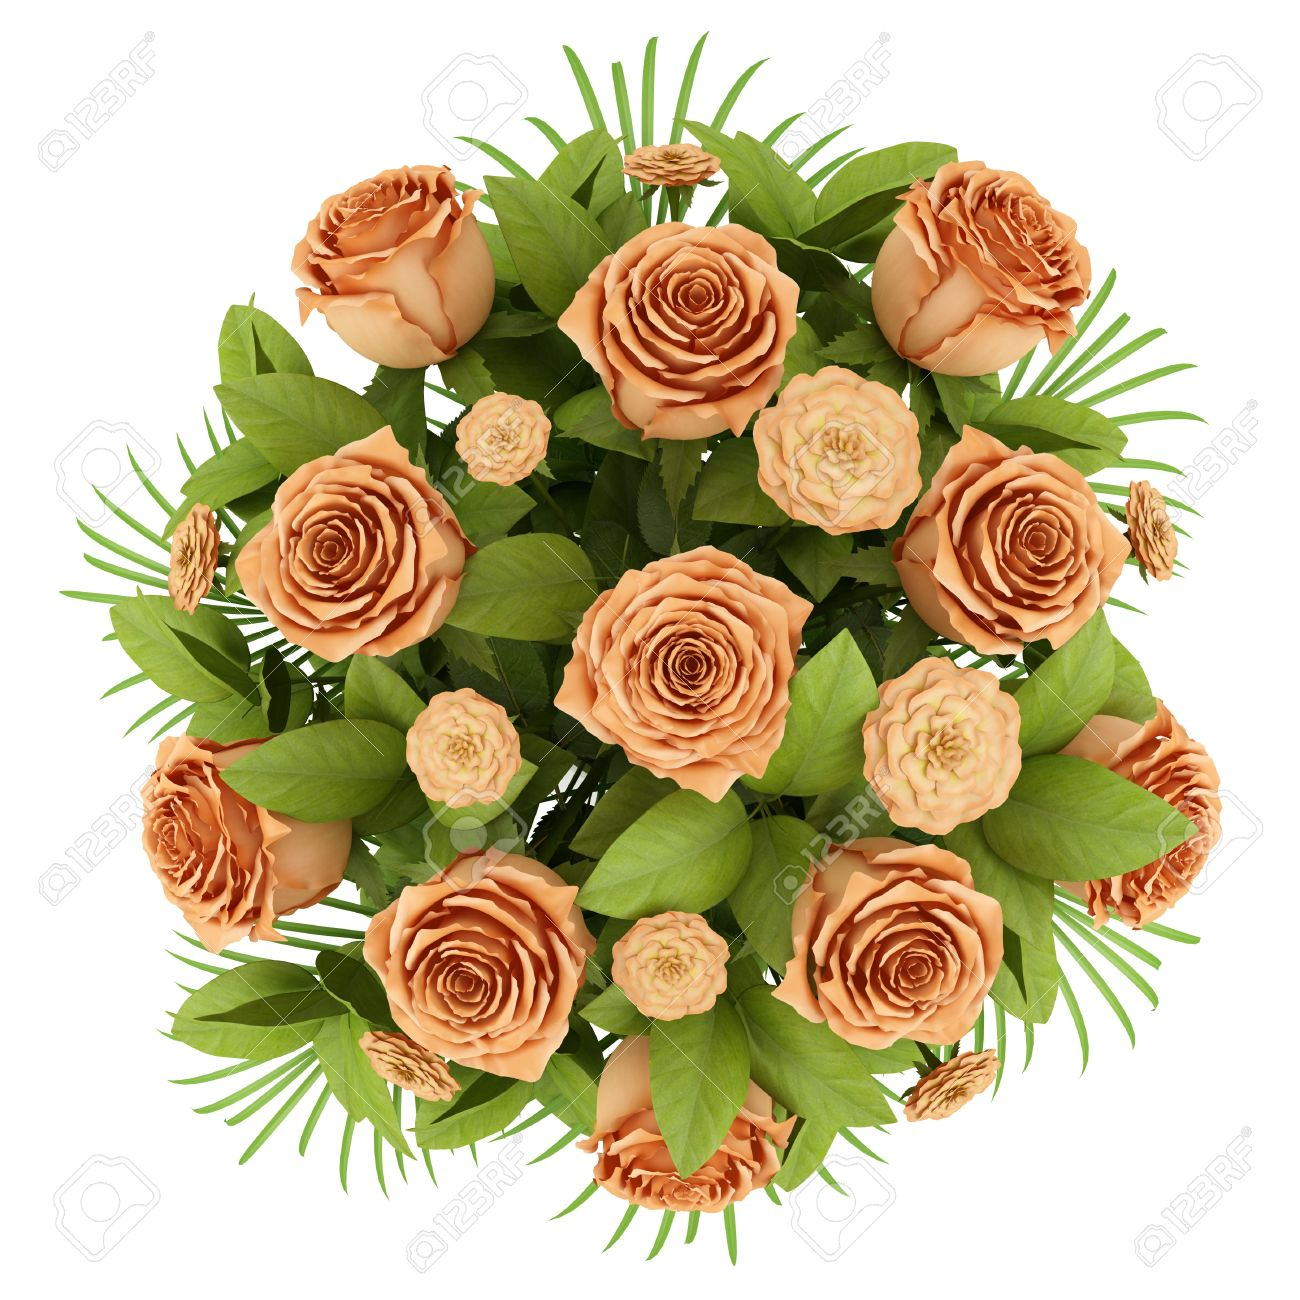 Best Stock Photo Top View Bouquet Of Orange Roses Isolated On White Background With Plant Png